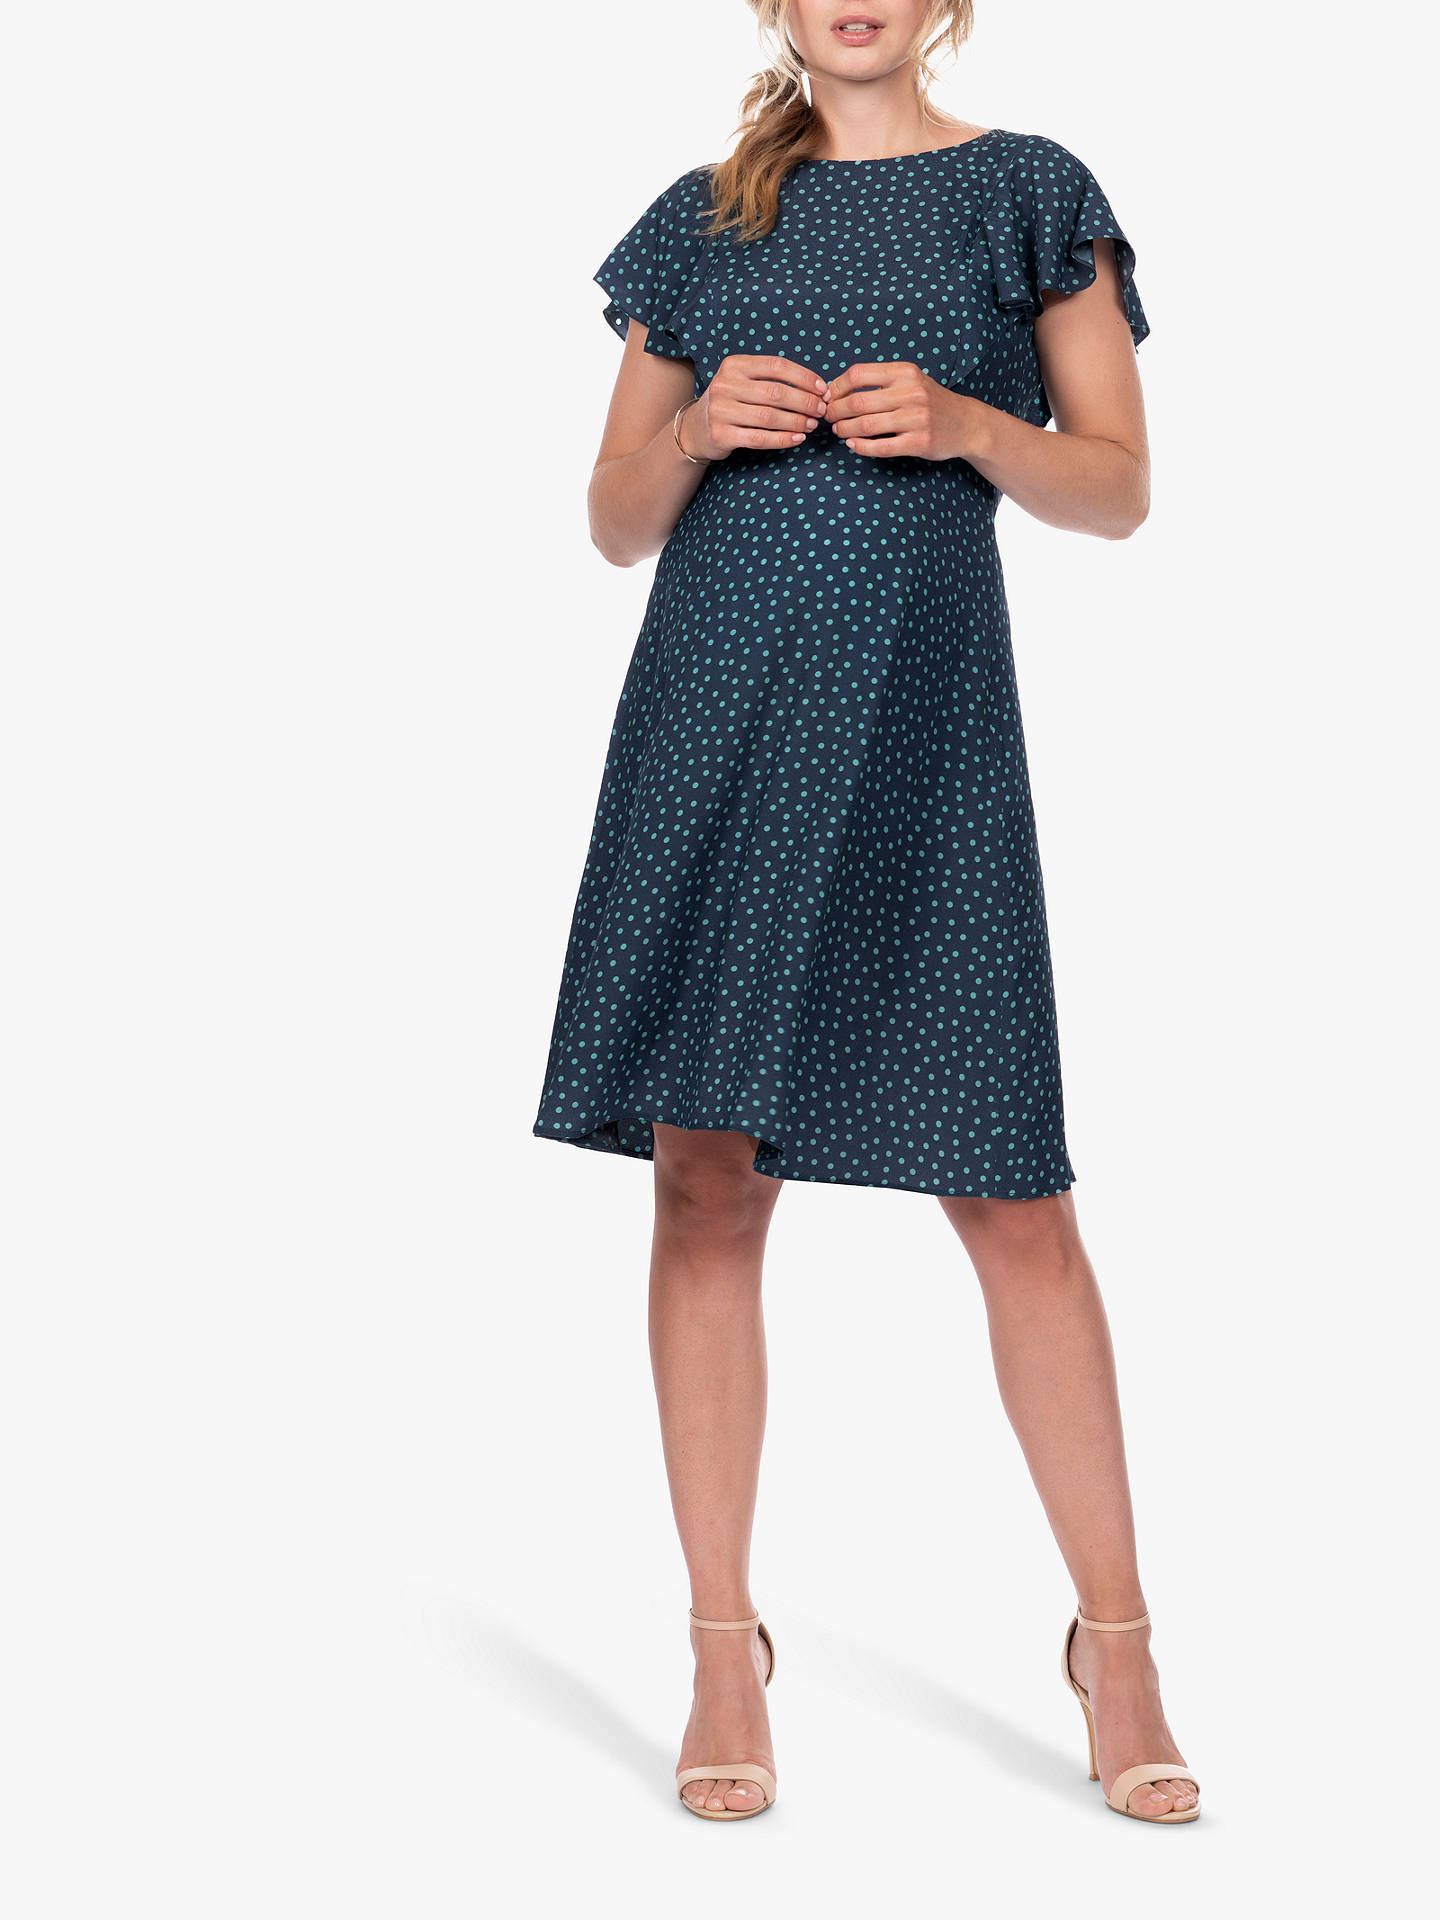 2c70e00f1eaf2 Buy Séraphine Acacia Dots Maternity Nursing Dress, Navy/Teal, 8 Online at  johnlewis ...